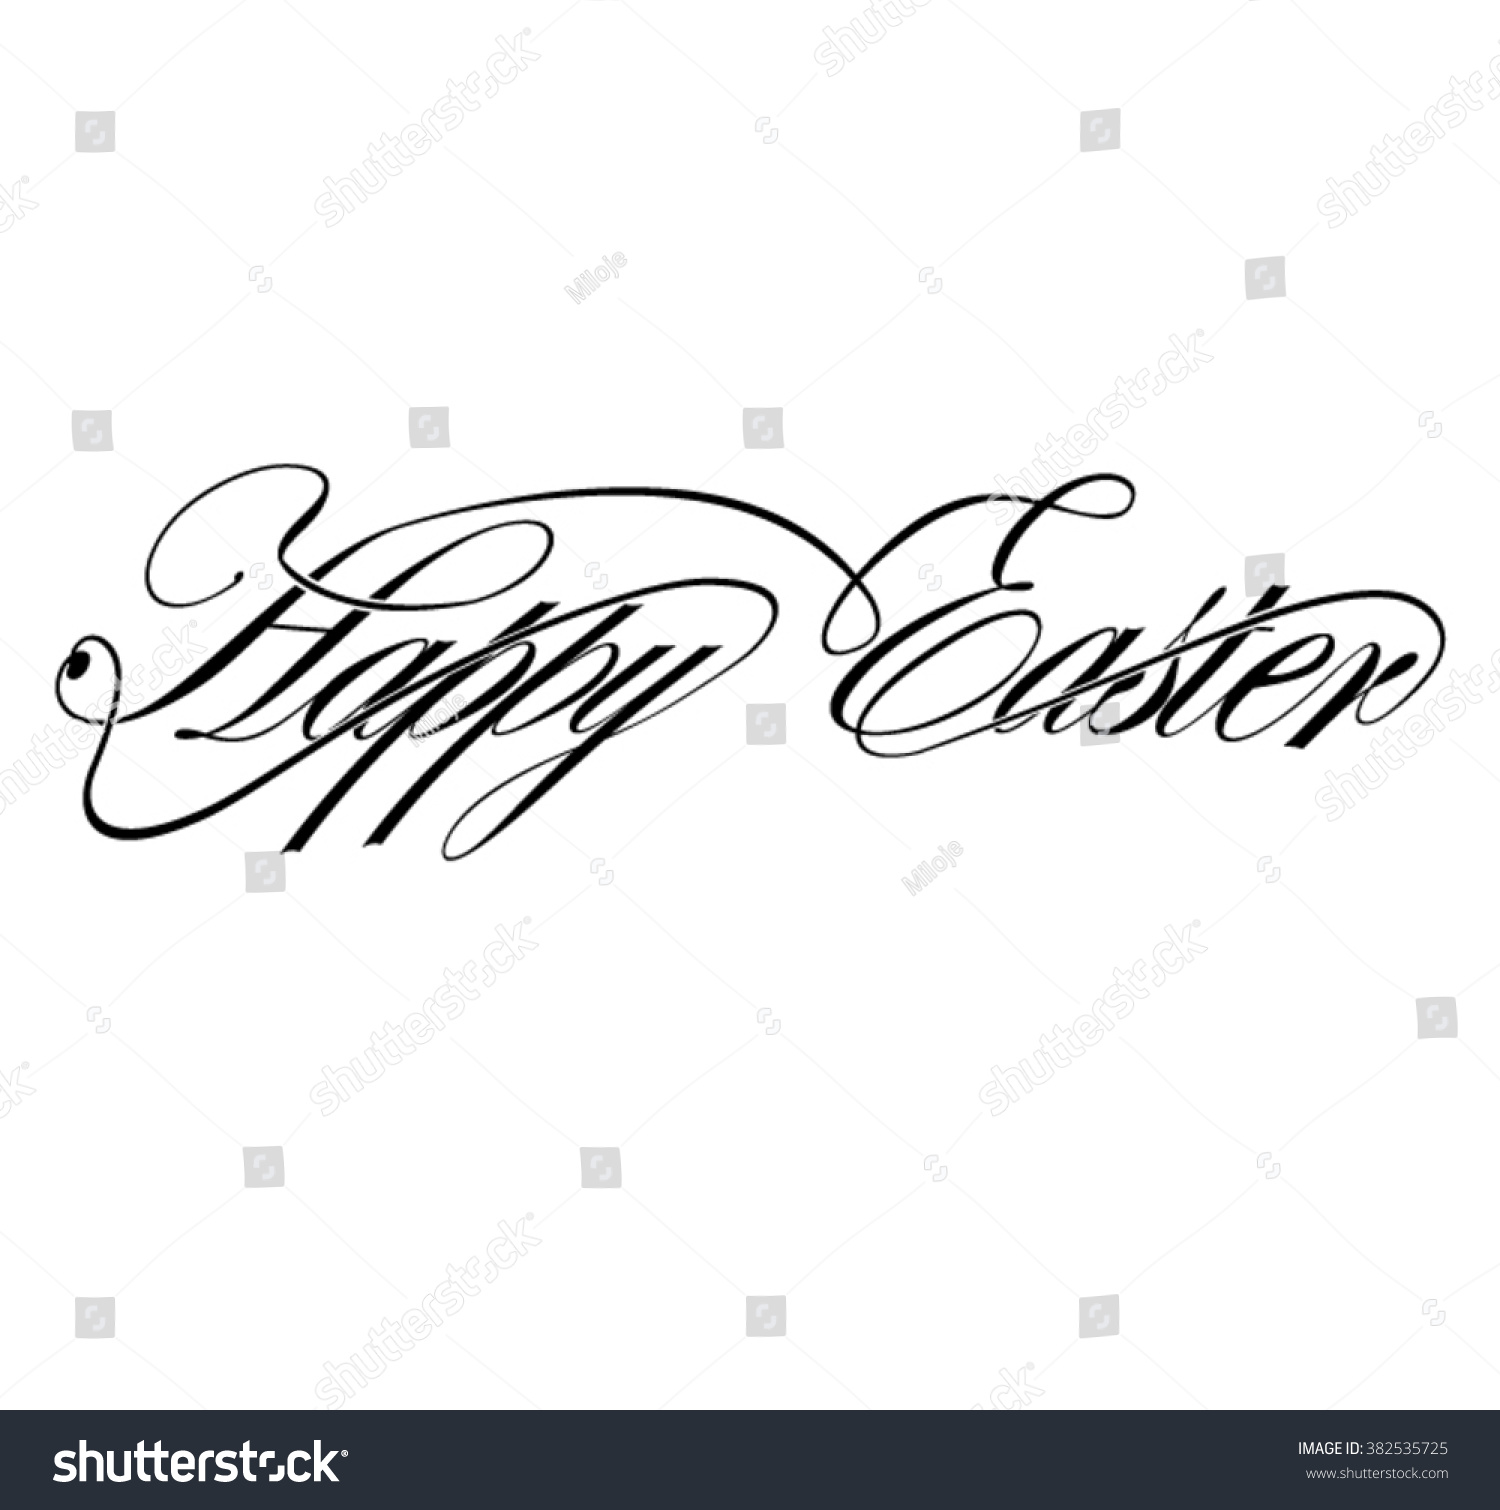 Calligraphy happy easter stock vector illustration